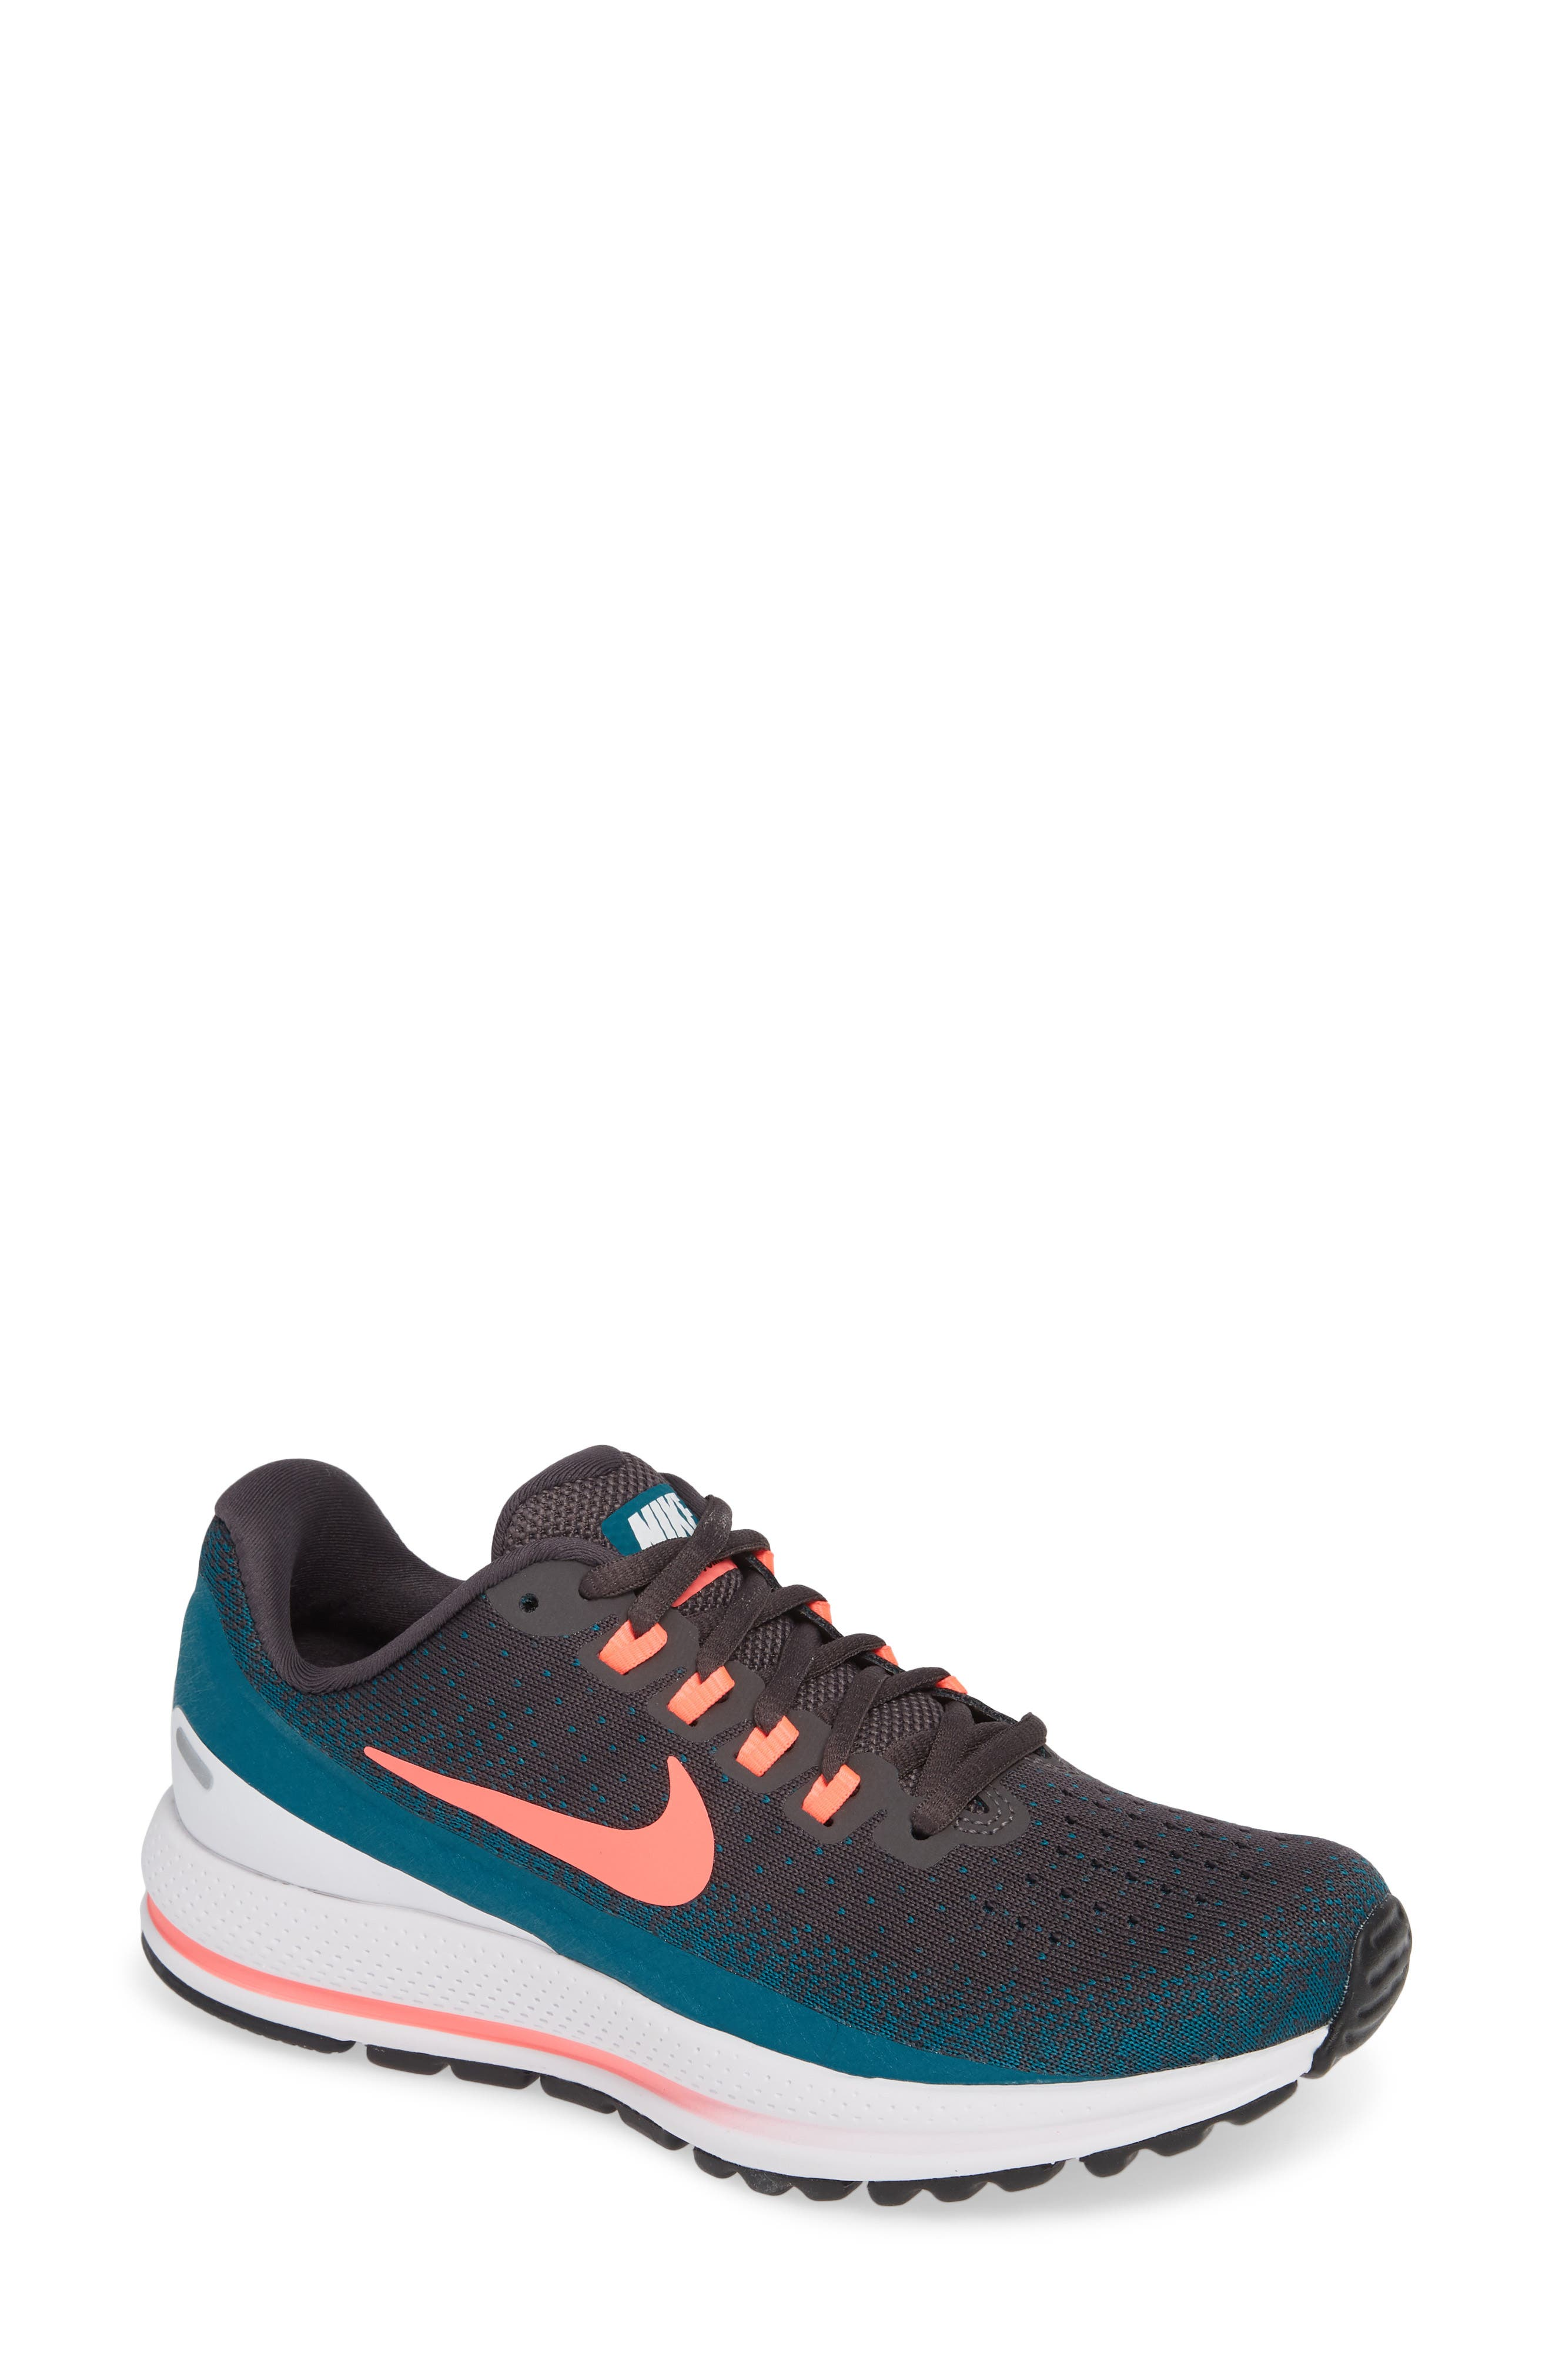 Air Zoom Vomero 13 Running Shoe,                         Main,                         color,